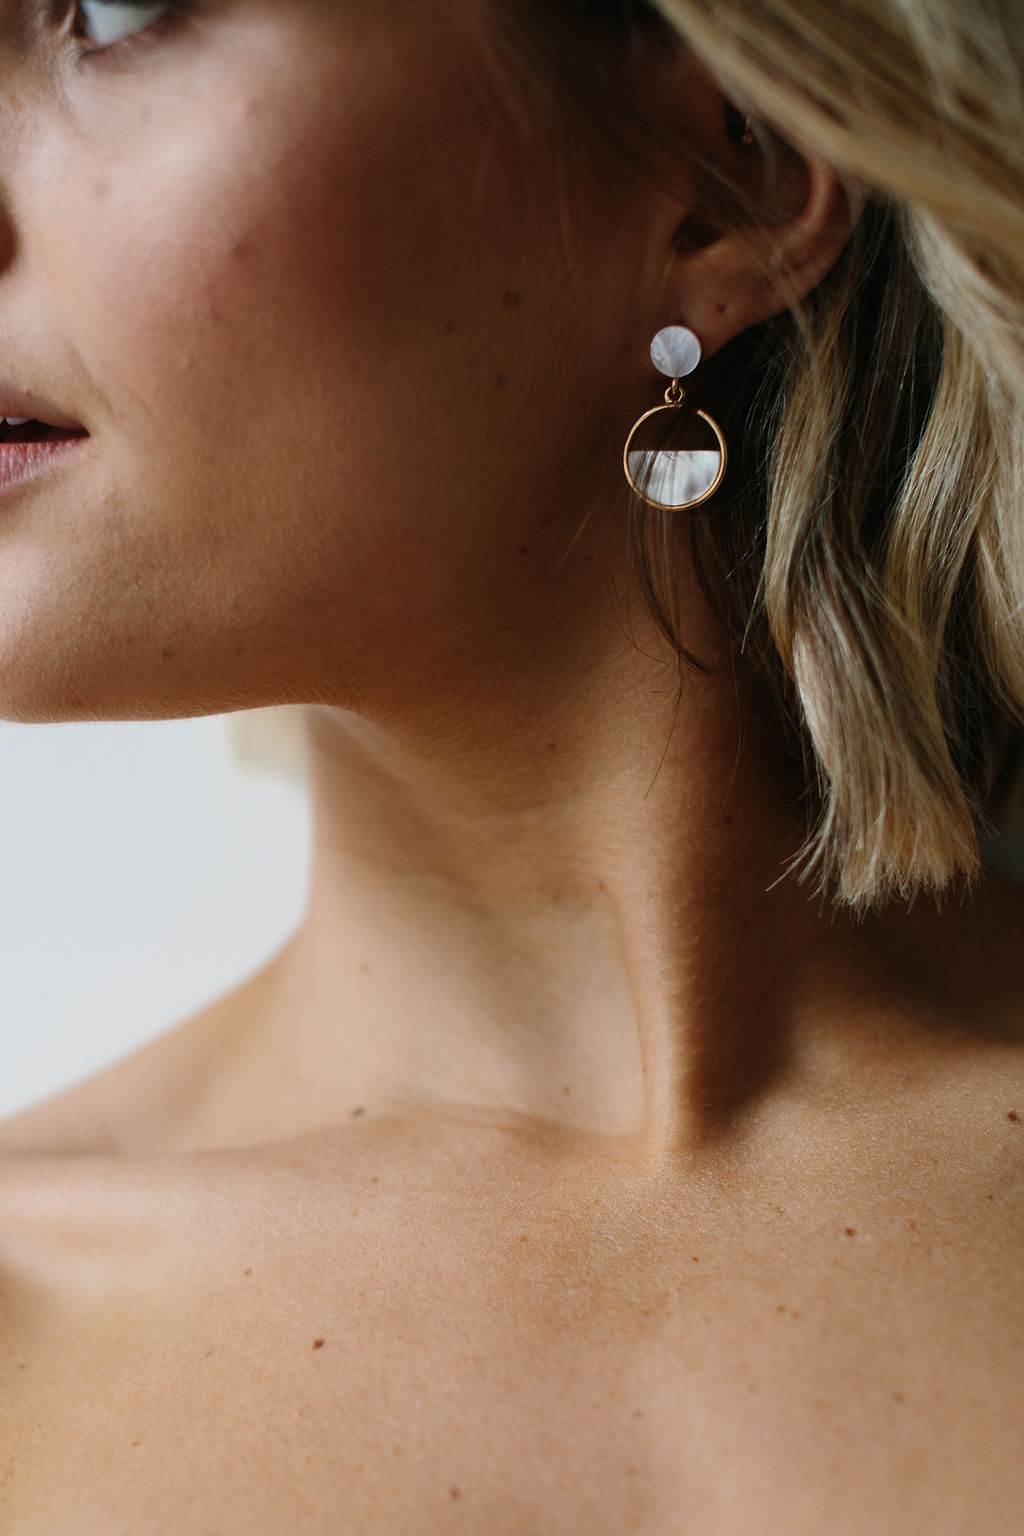 Natural No Makeup Bride with Modern Gold Hoop Pearl Earrings on Pinterest for Amelie George Wedding Jewellery Campaign